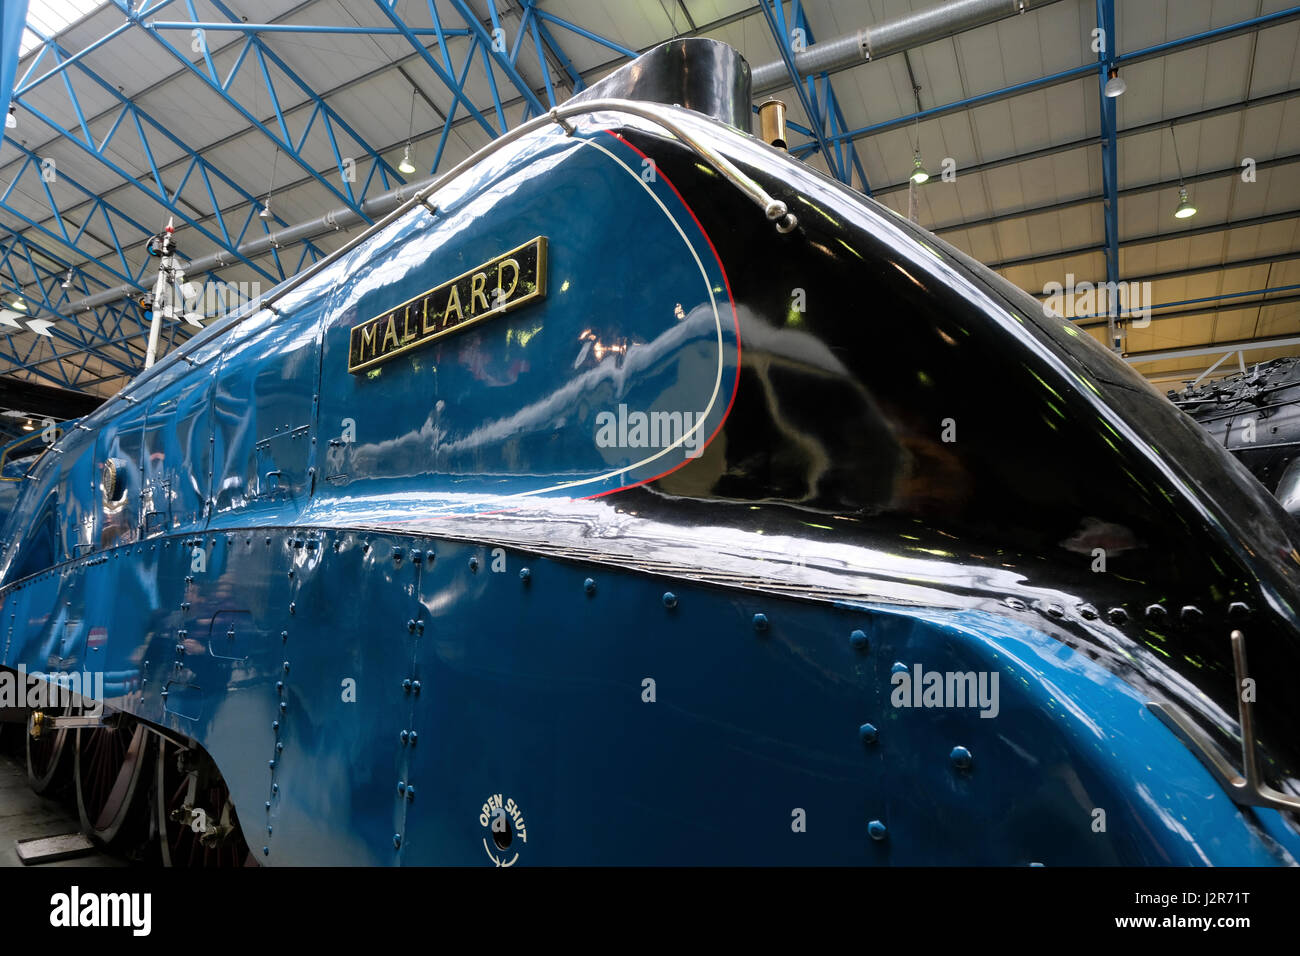 Exhibits inside The National Railway Museum in York - Stock Image